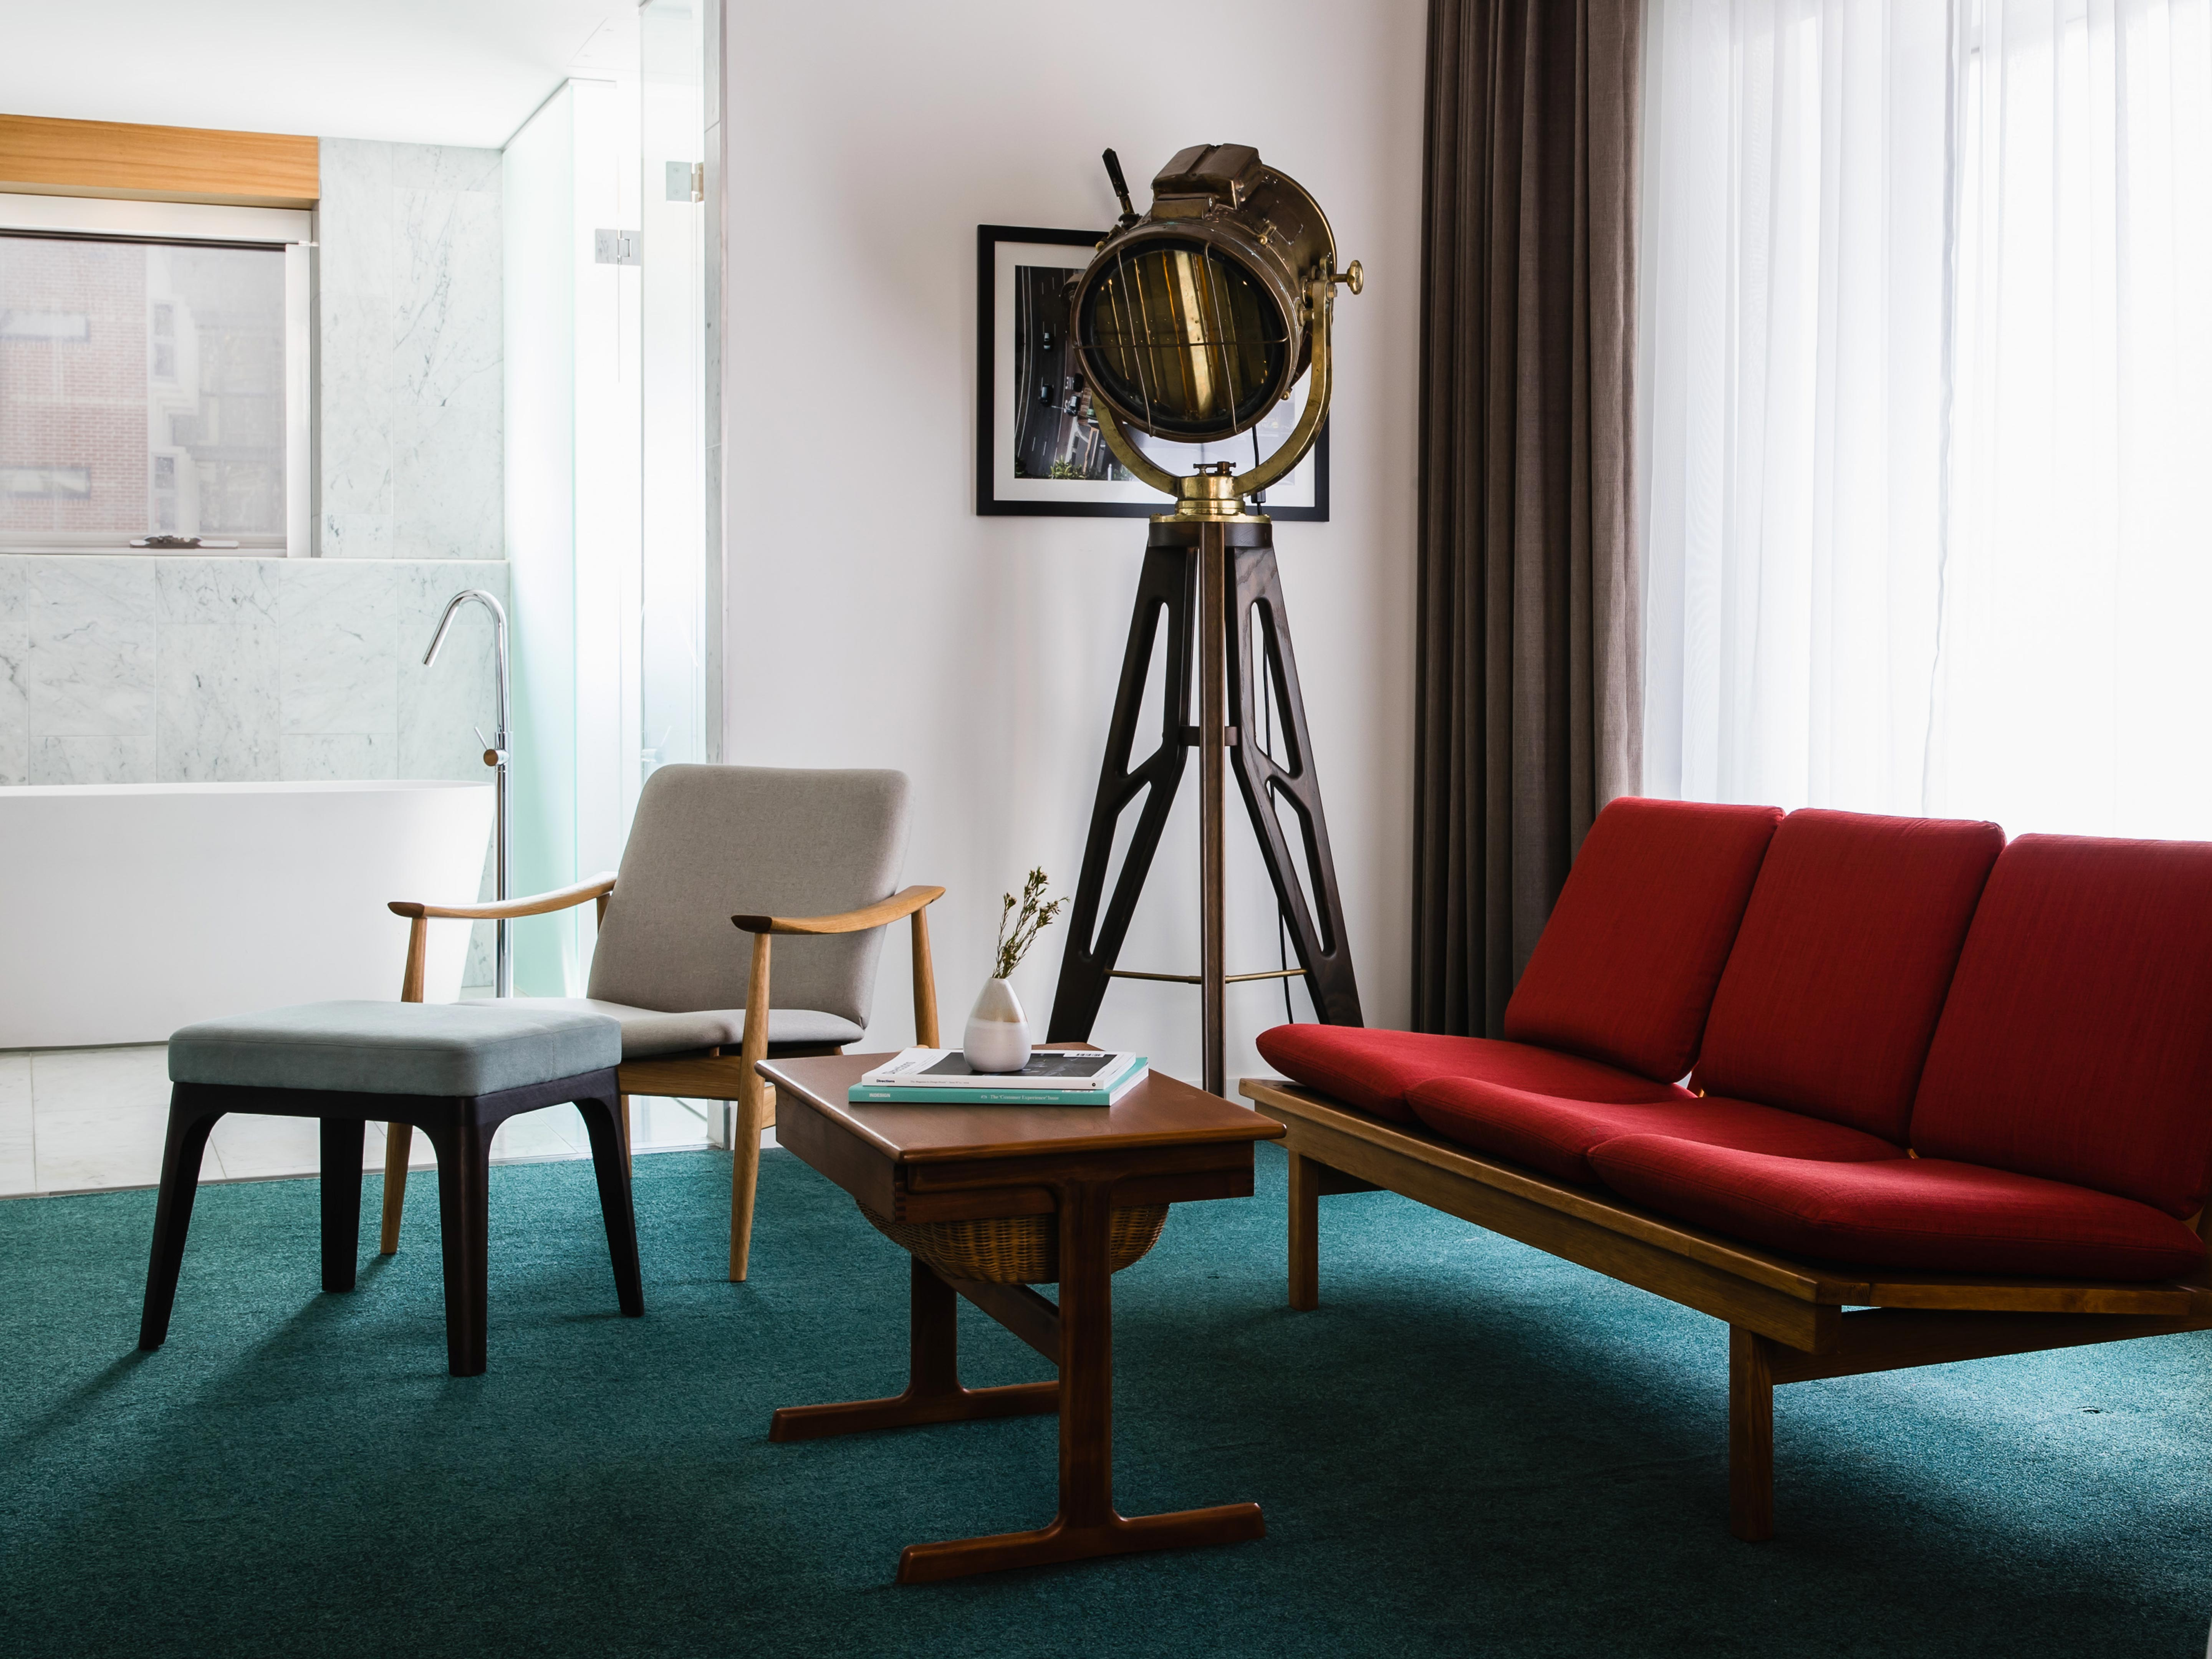 Rooms & Suites at The Old Clare Hotel in Sydney - Design ...